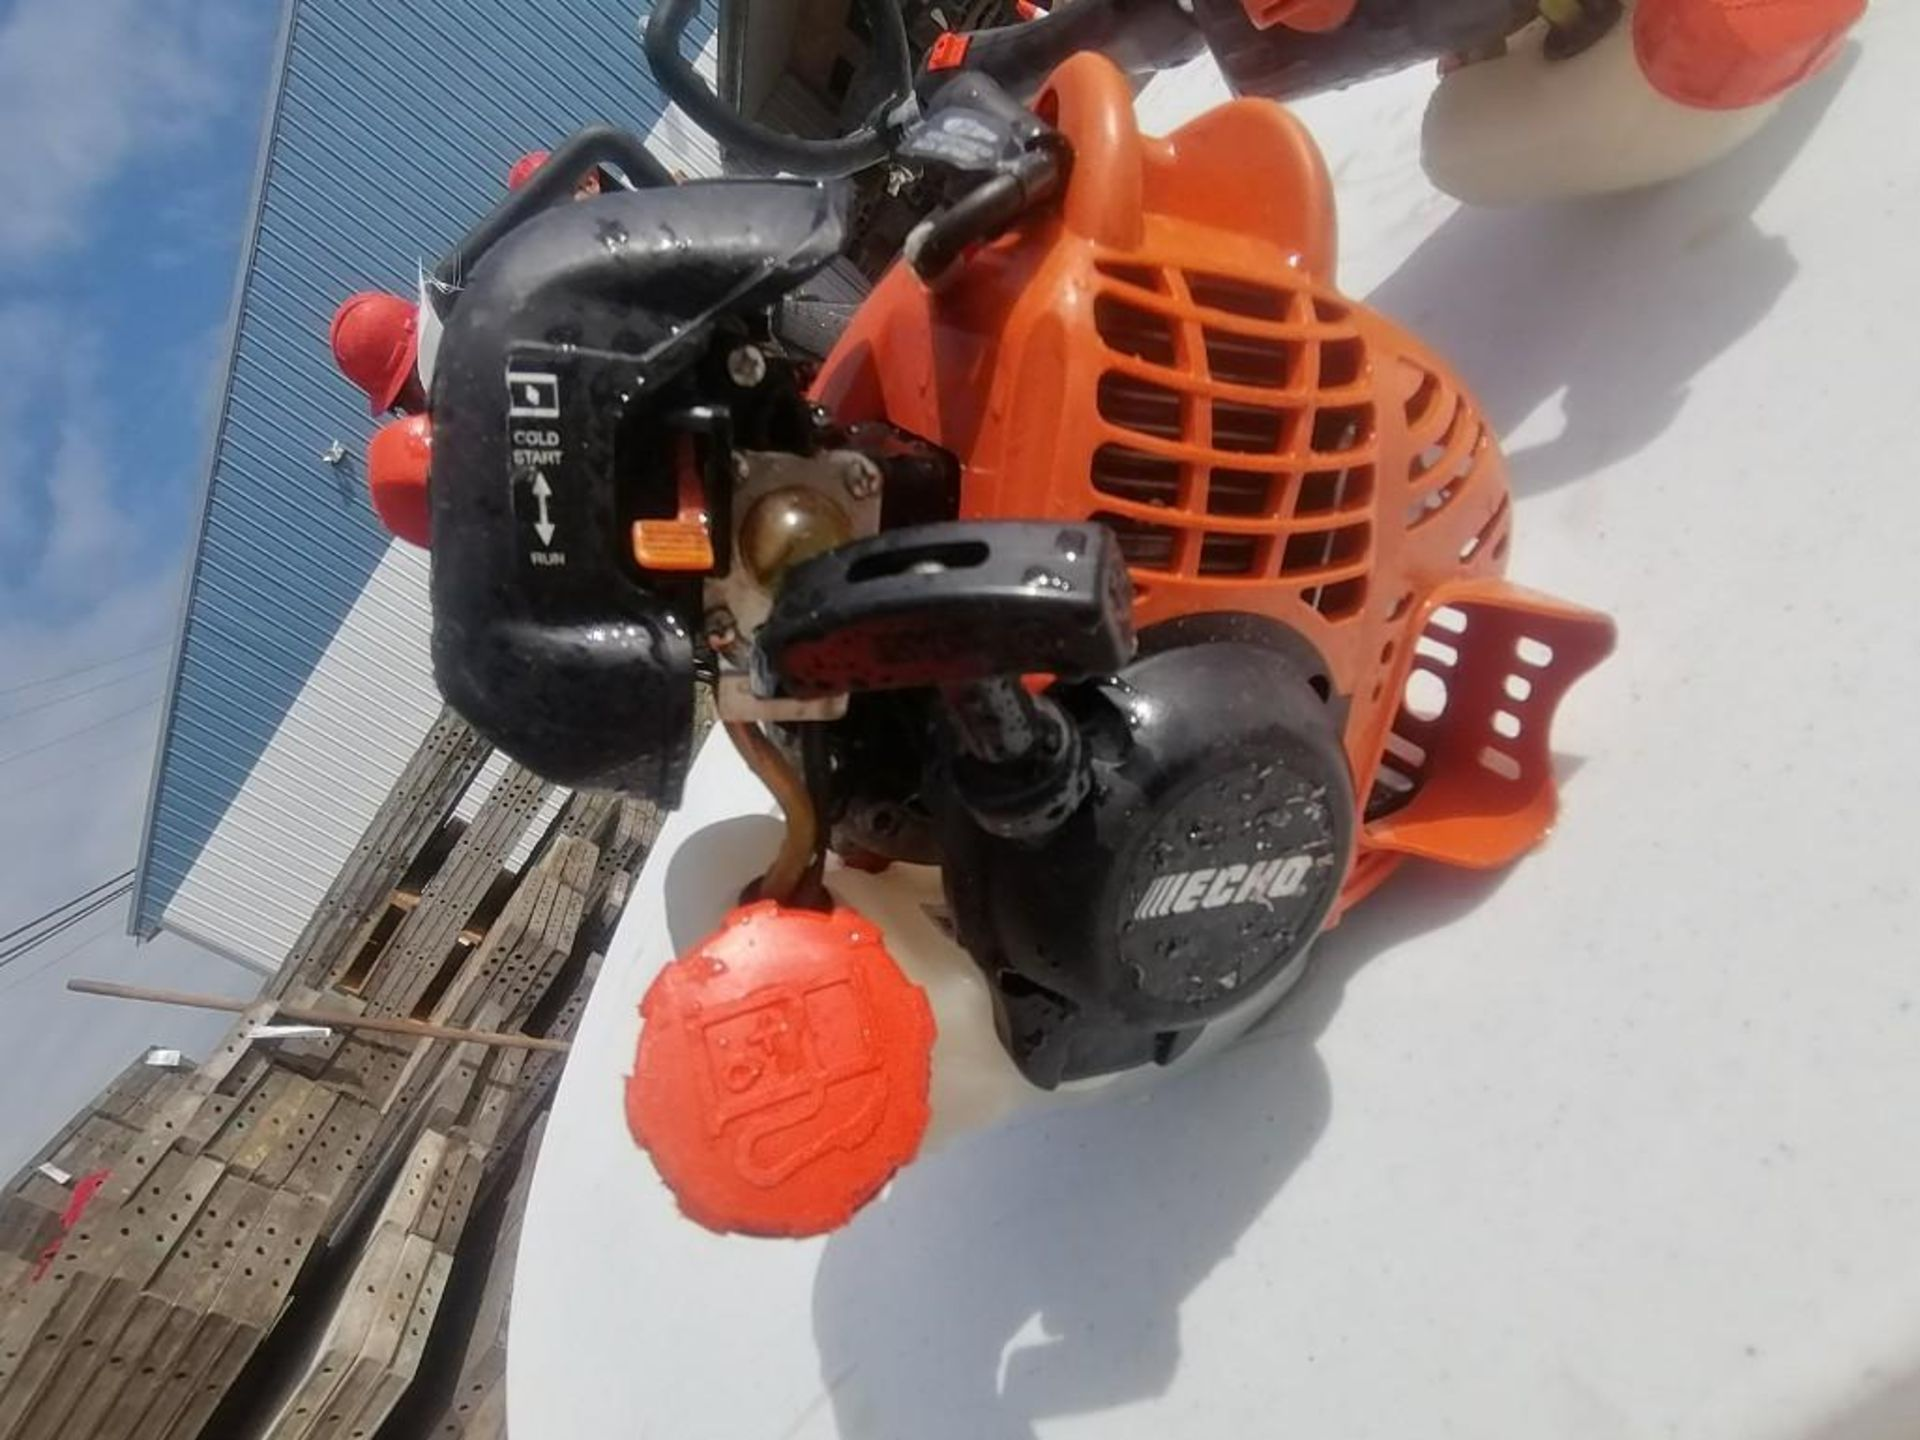 Lot 35 - (2) ECHO String Trimmer. Located at 301 E Henry Street, Mt. Pleasant, IA 52641.